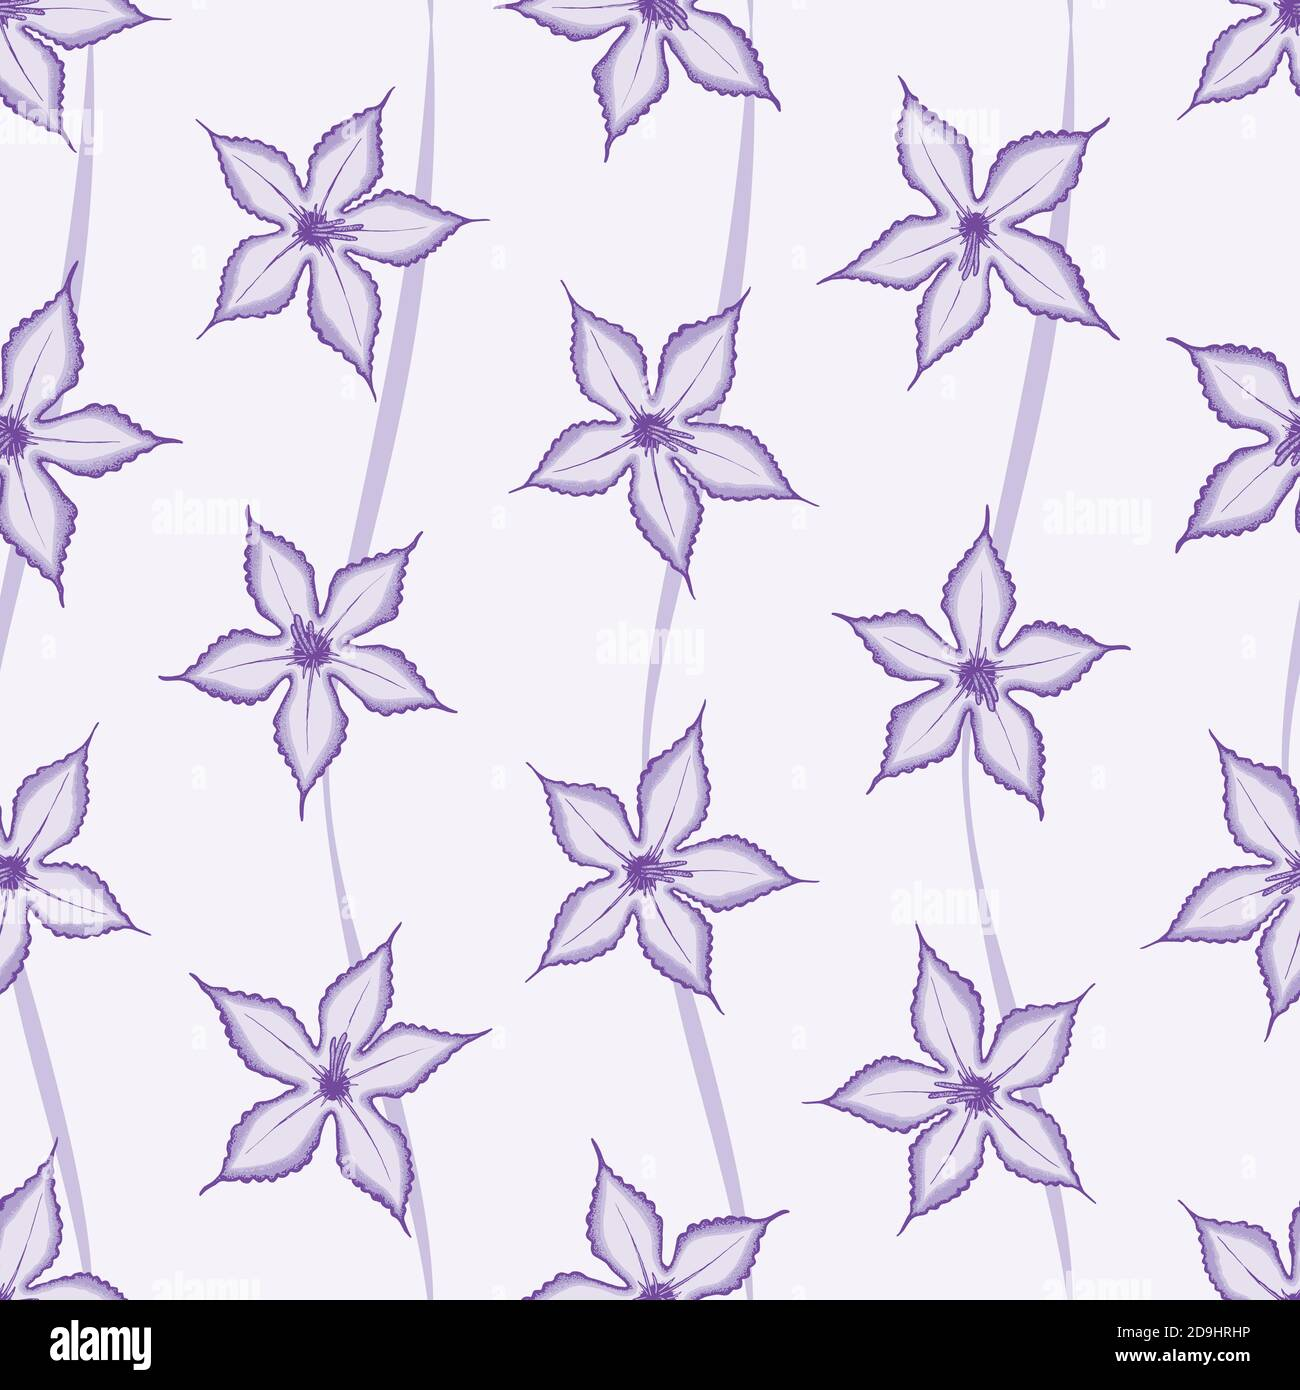 Purple Impala seamless pattern with swirl lines background. Desert wild flower concept. Vector illustration pattern for surface, t shirt design, print Stock Vector